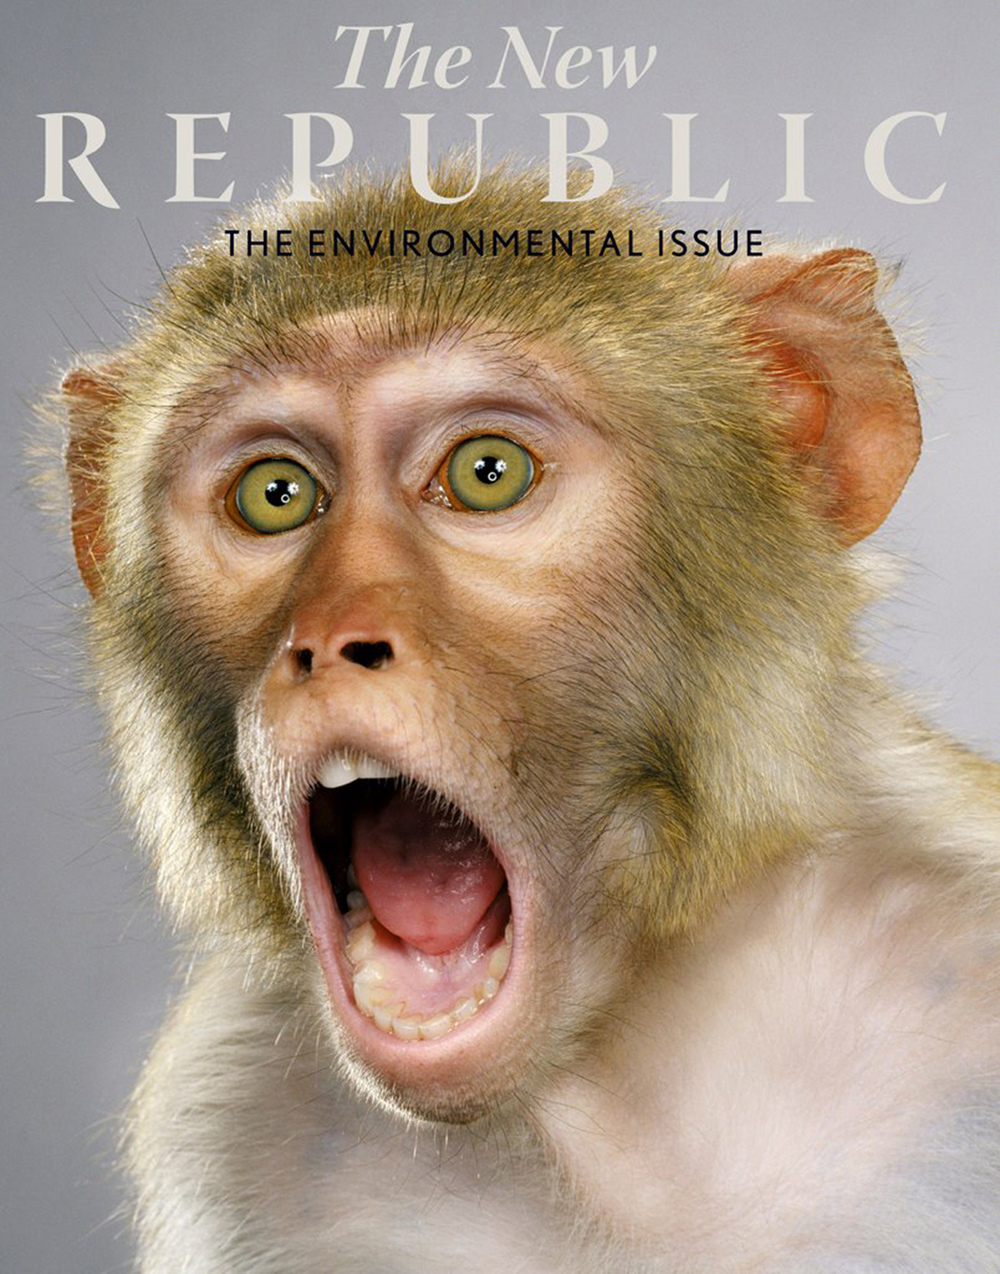 the_new_rep_envir_issue_cover.jpg